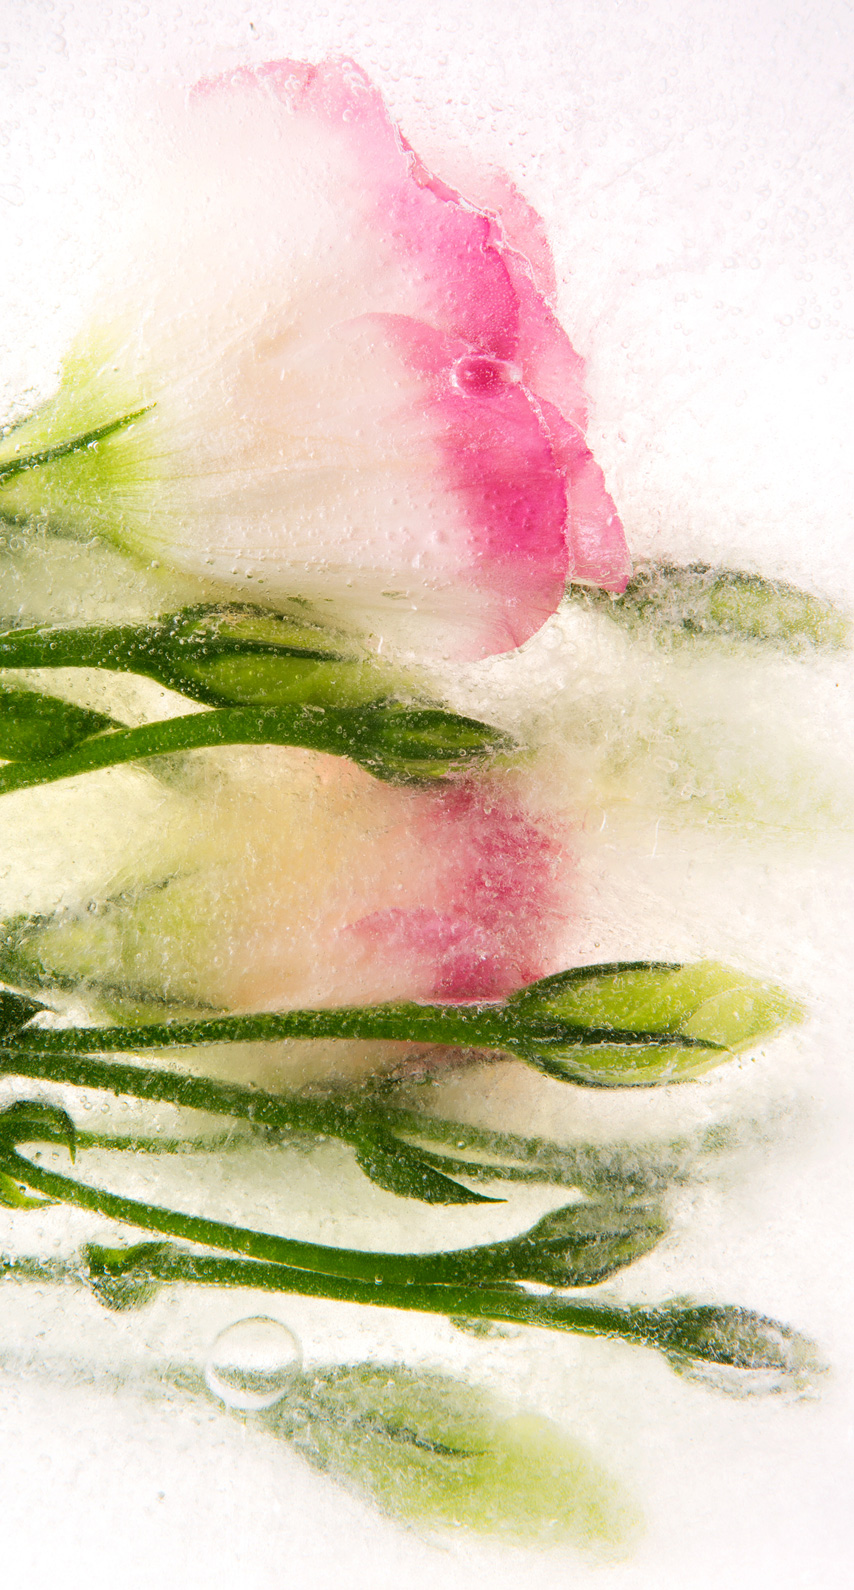 freshness, icee, healthy, fruit, refreshment, artwork, watercolor paint, acrylic paint, still life photography, rose family, H2O